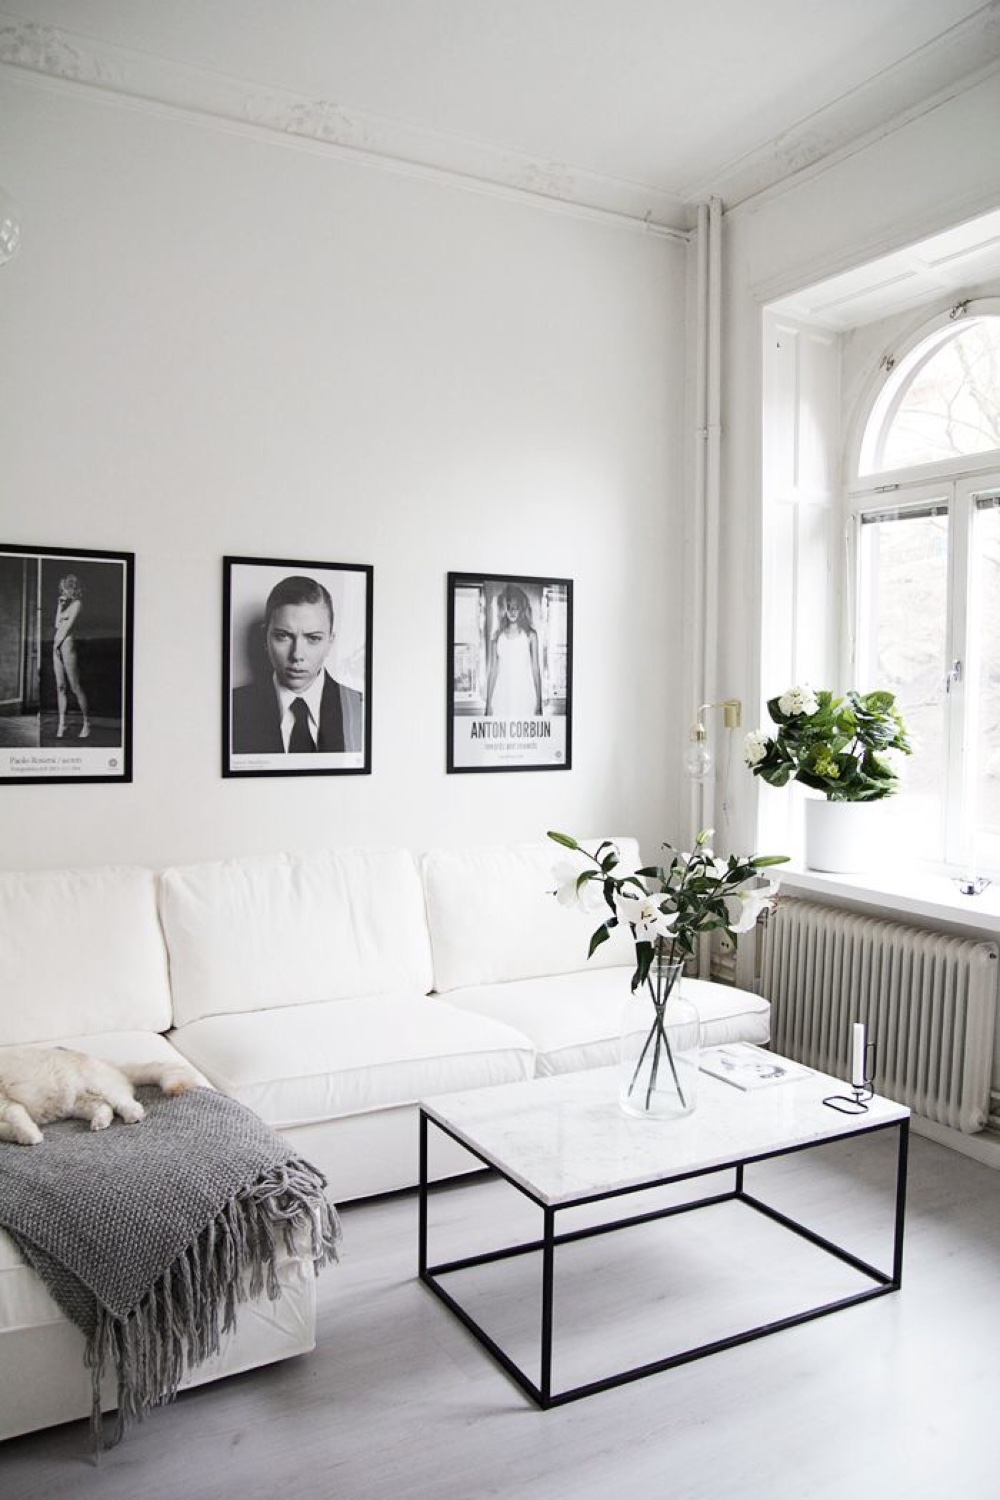 The White Couch :: Your Blank Canvas to Design. Original source unknown